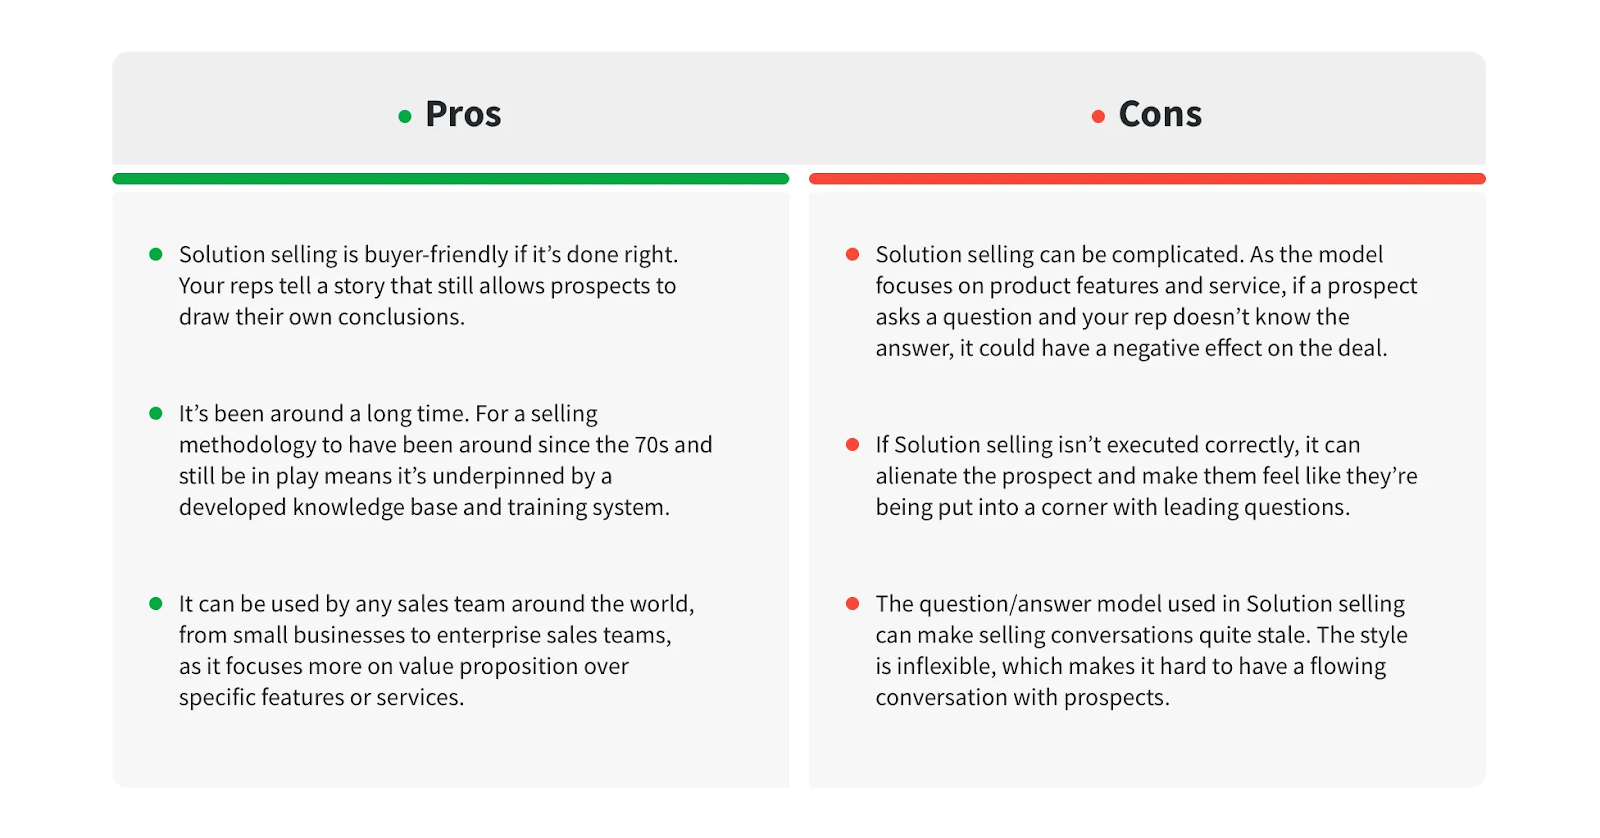 pros-cons-solution-selling